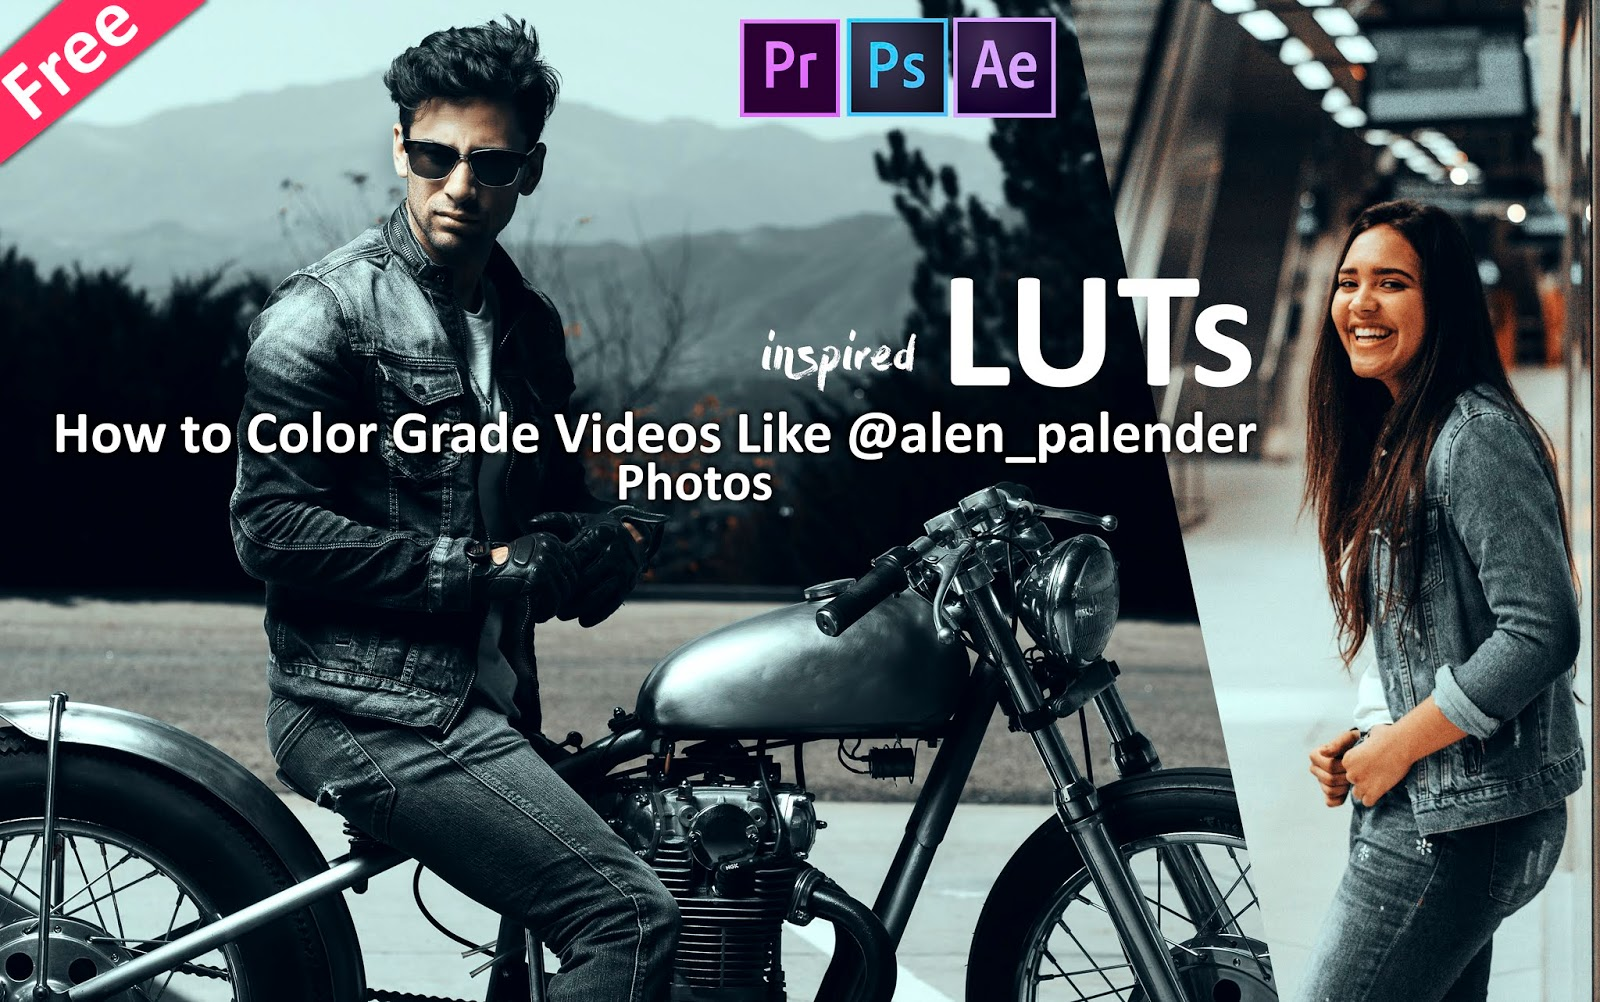 Download Alen Palender Inspired LUTs for Free | How to Color Grade Your Videos in Premier Pro, Adobe After Effects, Premiere Pro, Photoshop